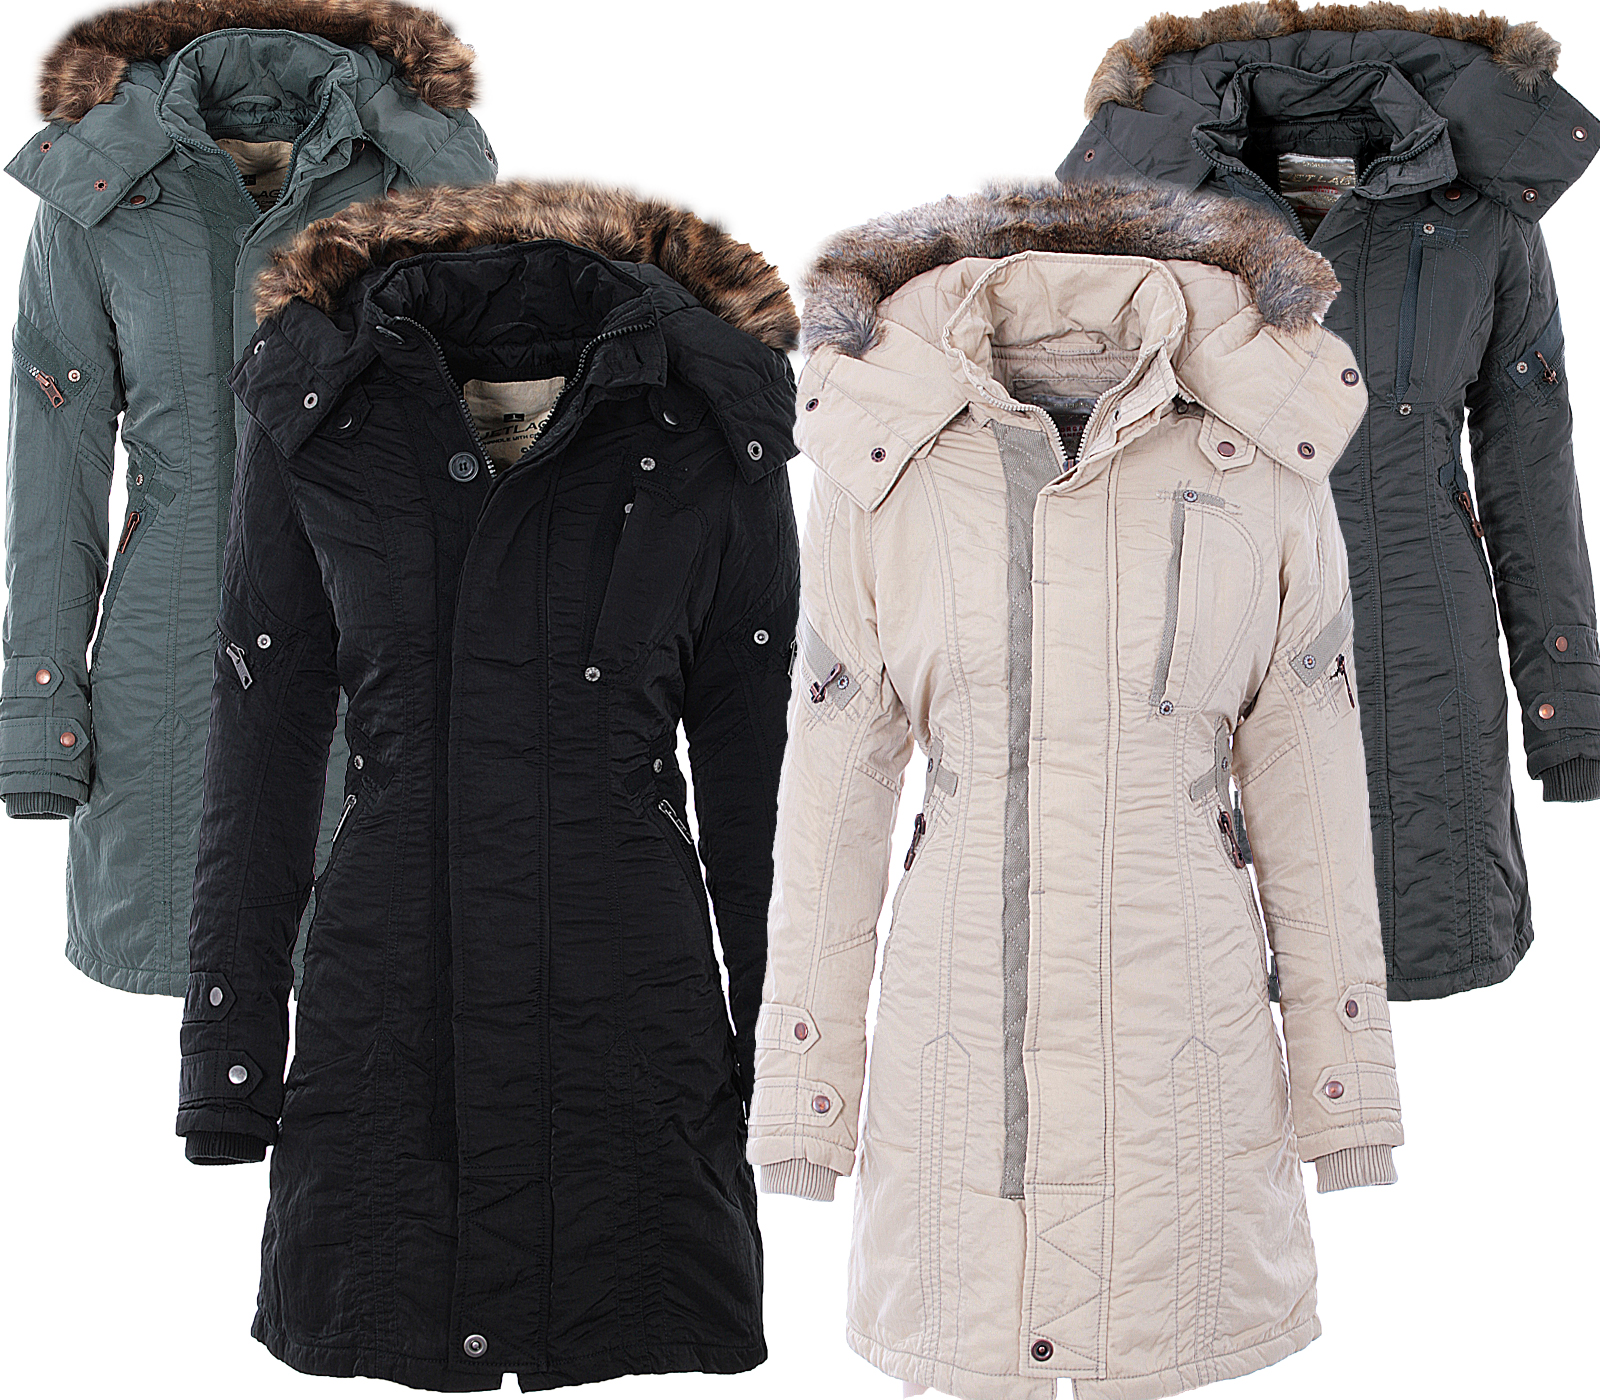 730619babe7c JET LAG DAMEN WINTER JACKE MANTEL PARKA SW61A OUTDOOR WINTERJACKE ...